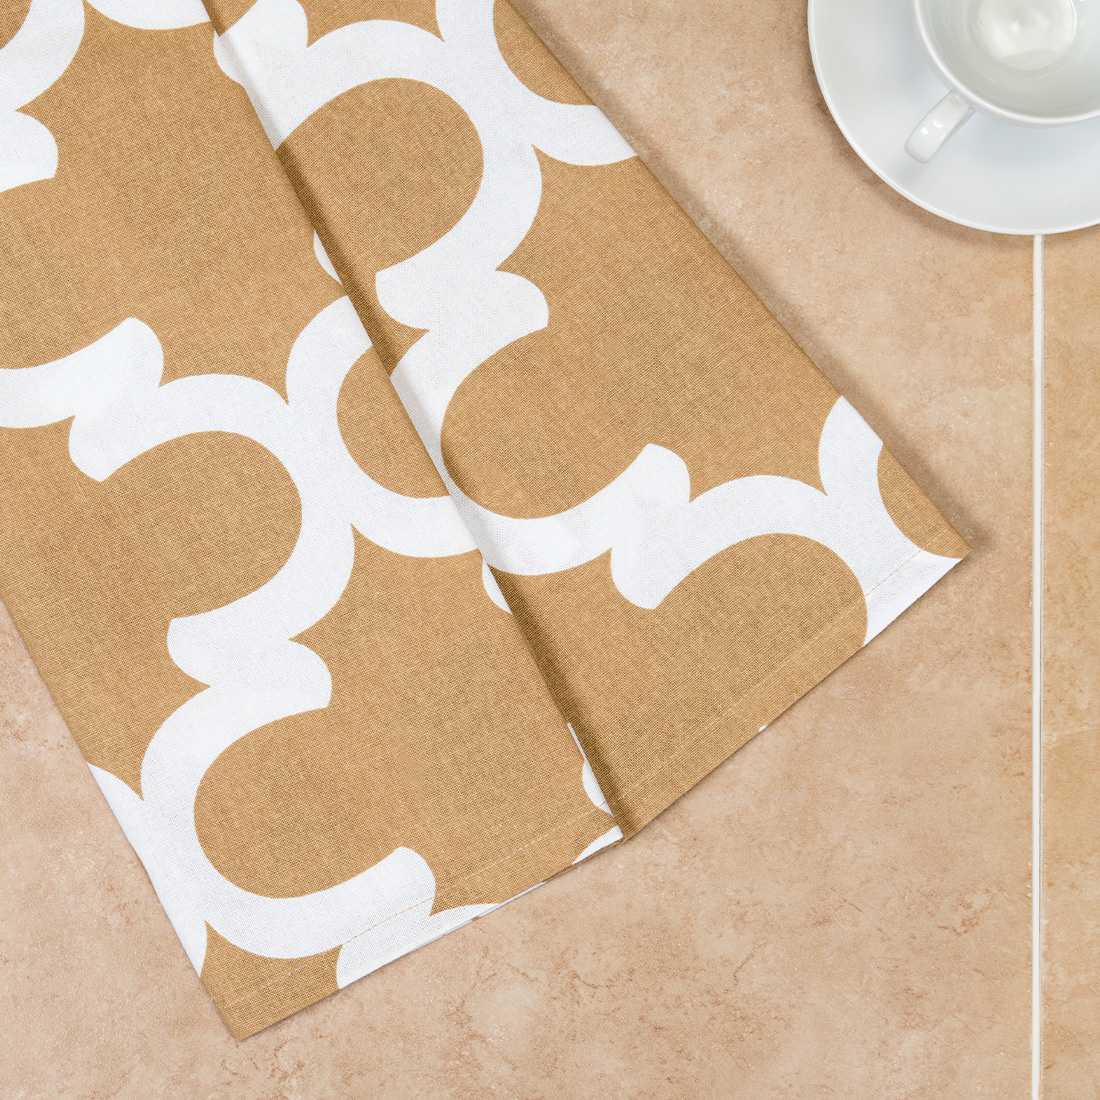 18 x 28 in. Latte & White Trellis Kitchen Towels 2 pack by